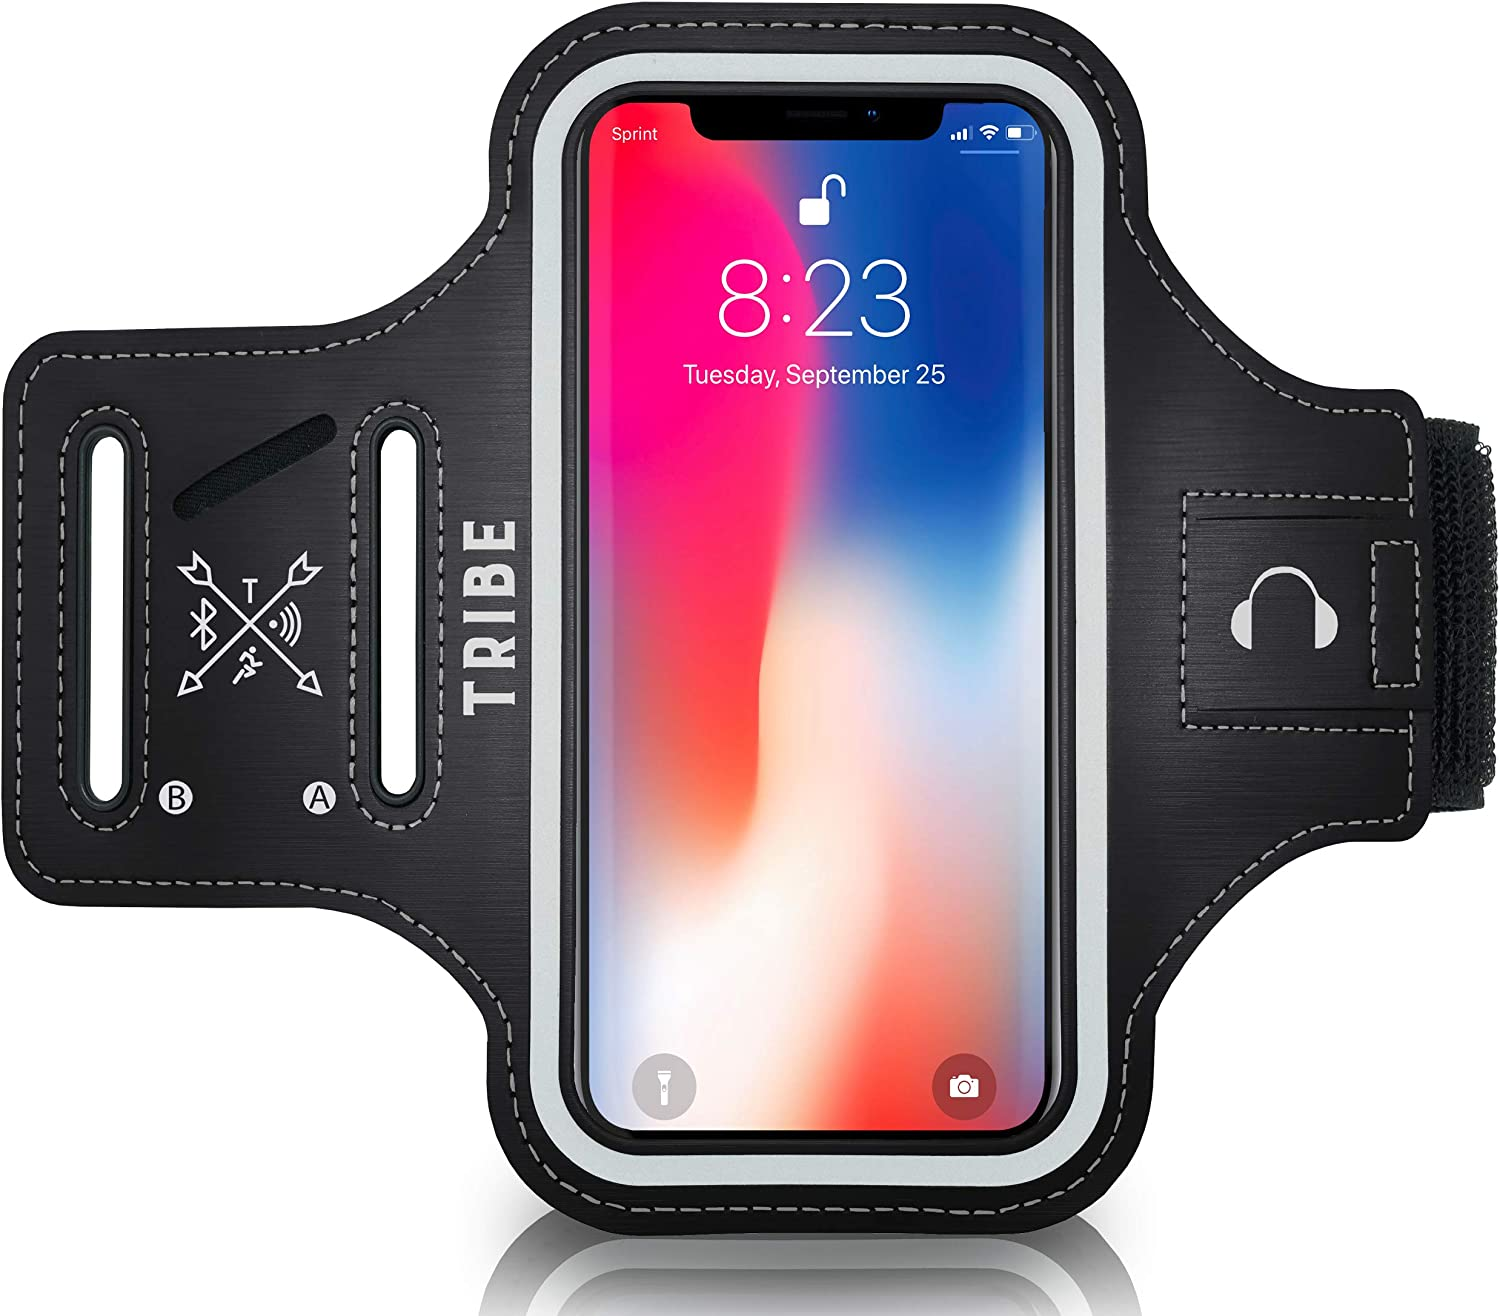 TRIBE Water Resistant Cell Phone for Running Rare Max 79% OFF Holder Armband Case